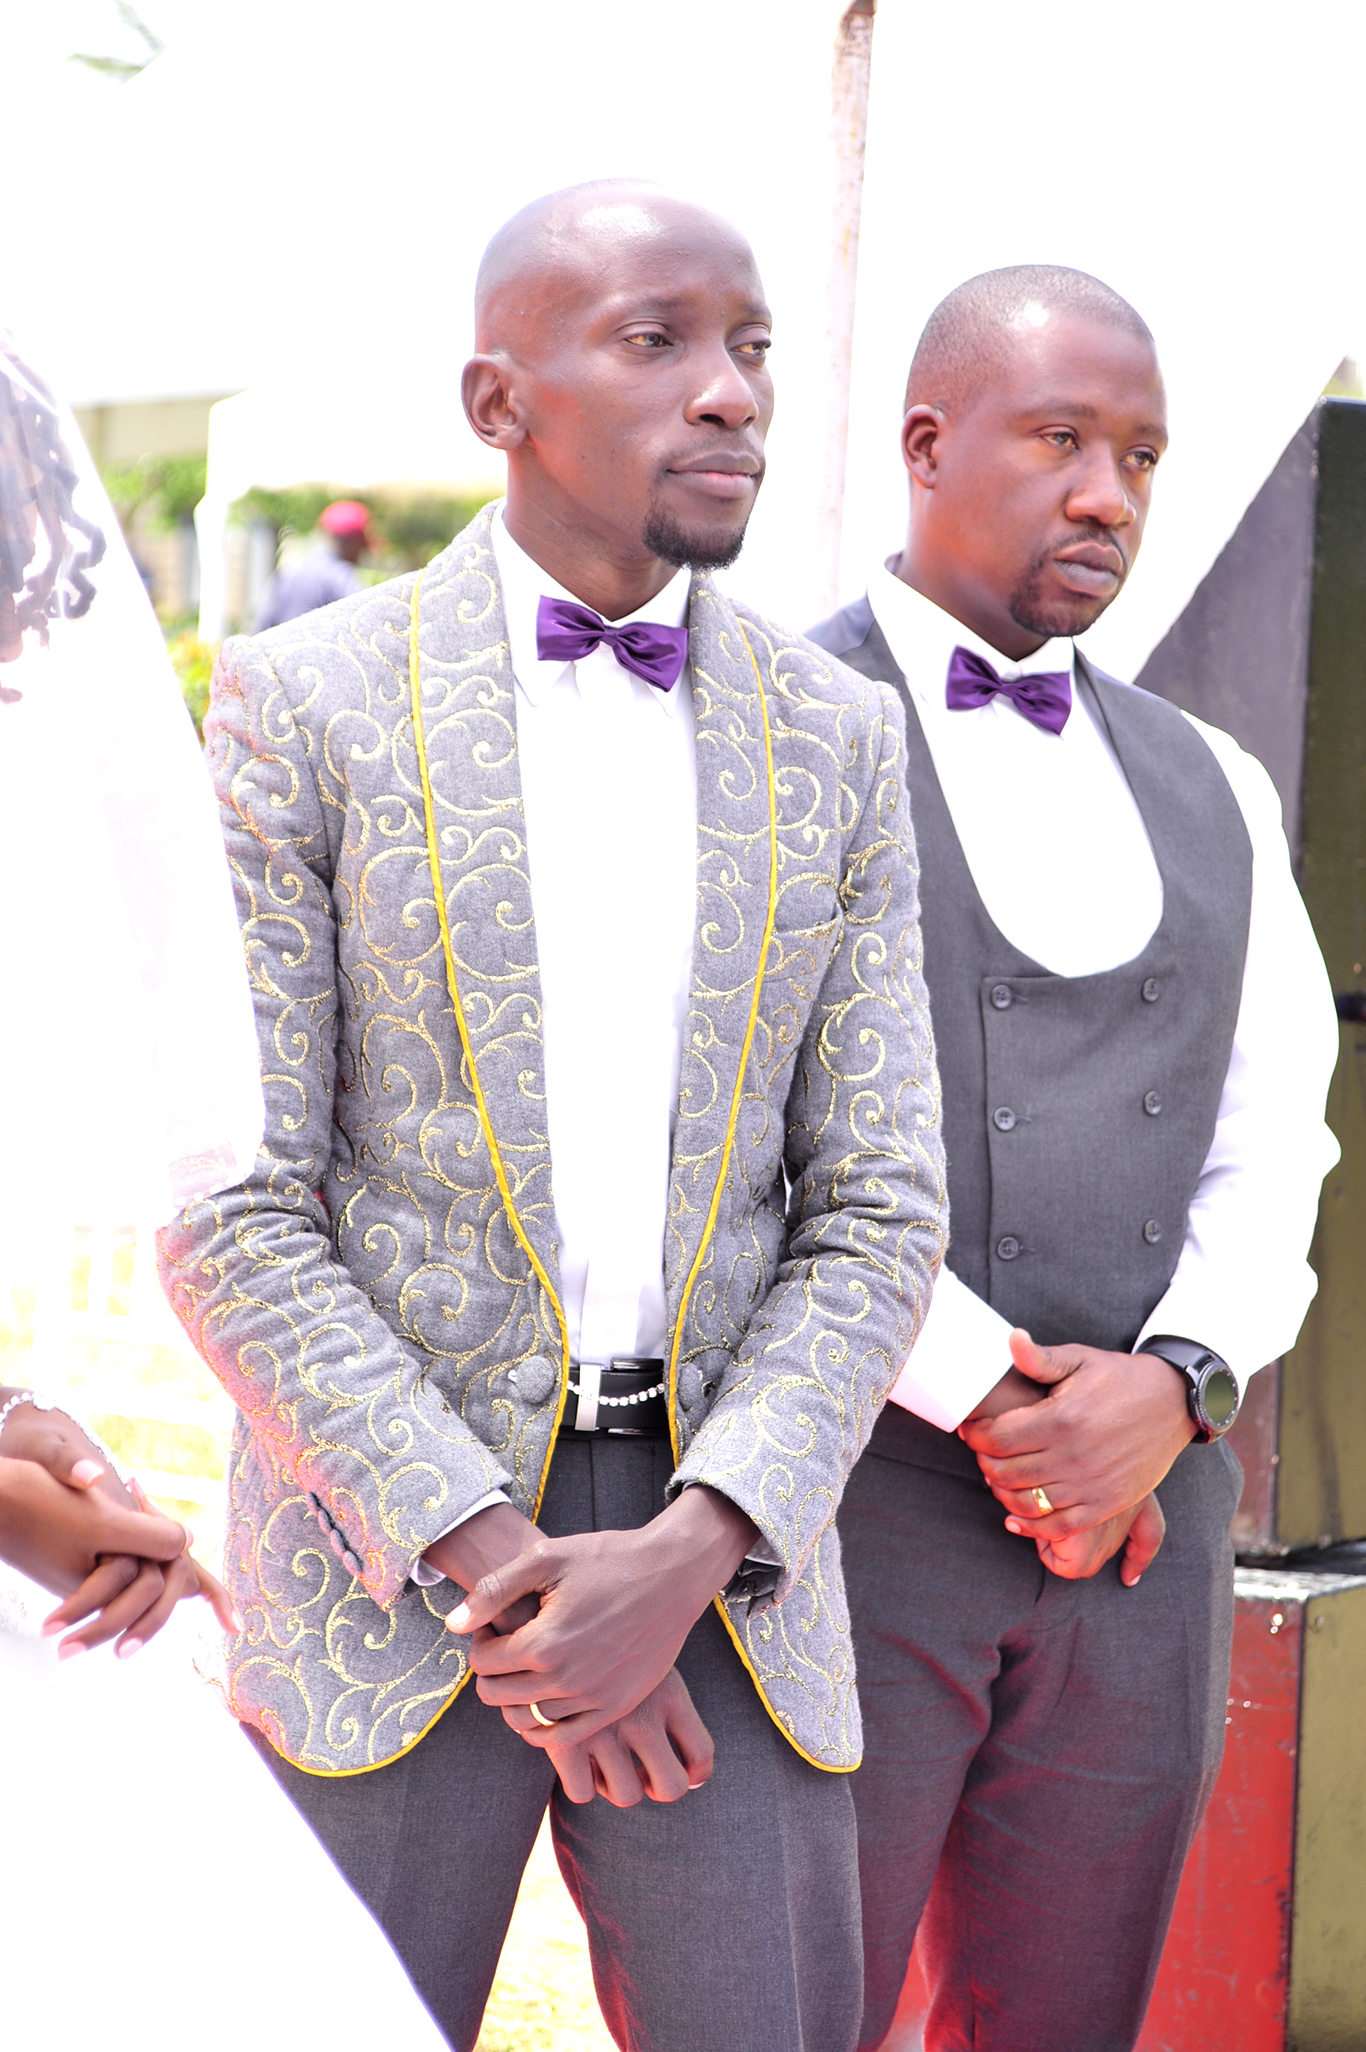 Groom blazer for wedding Kenya